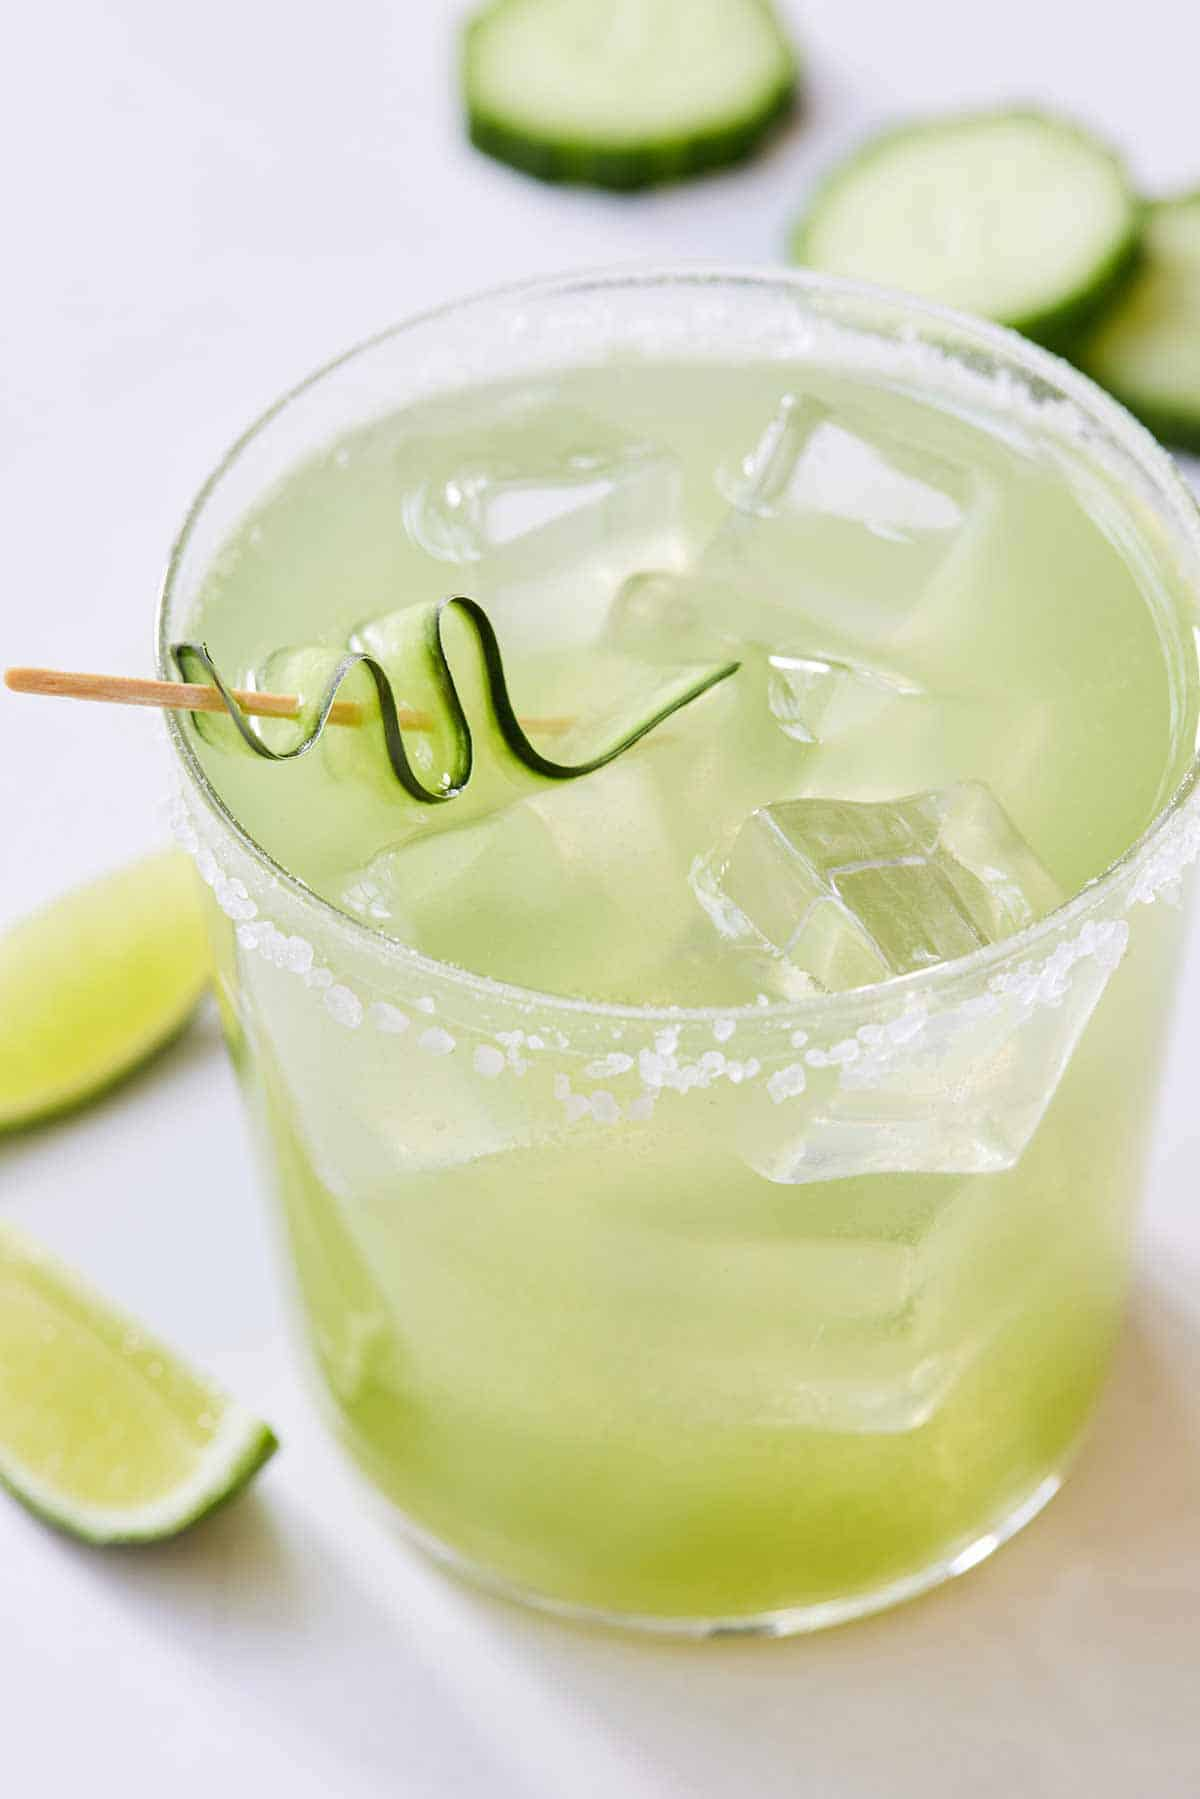 Close up of a glass of cucumber margarita with a cucumber ribbon in a toothpick as garnish.